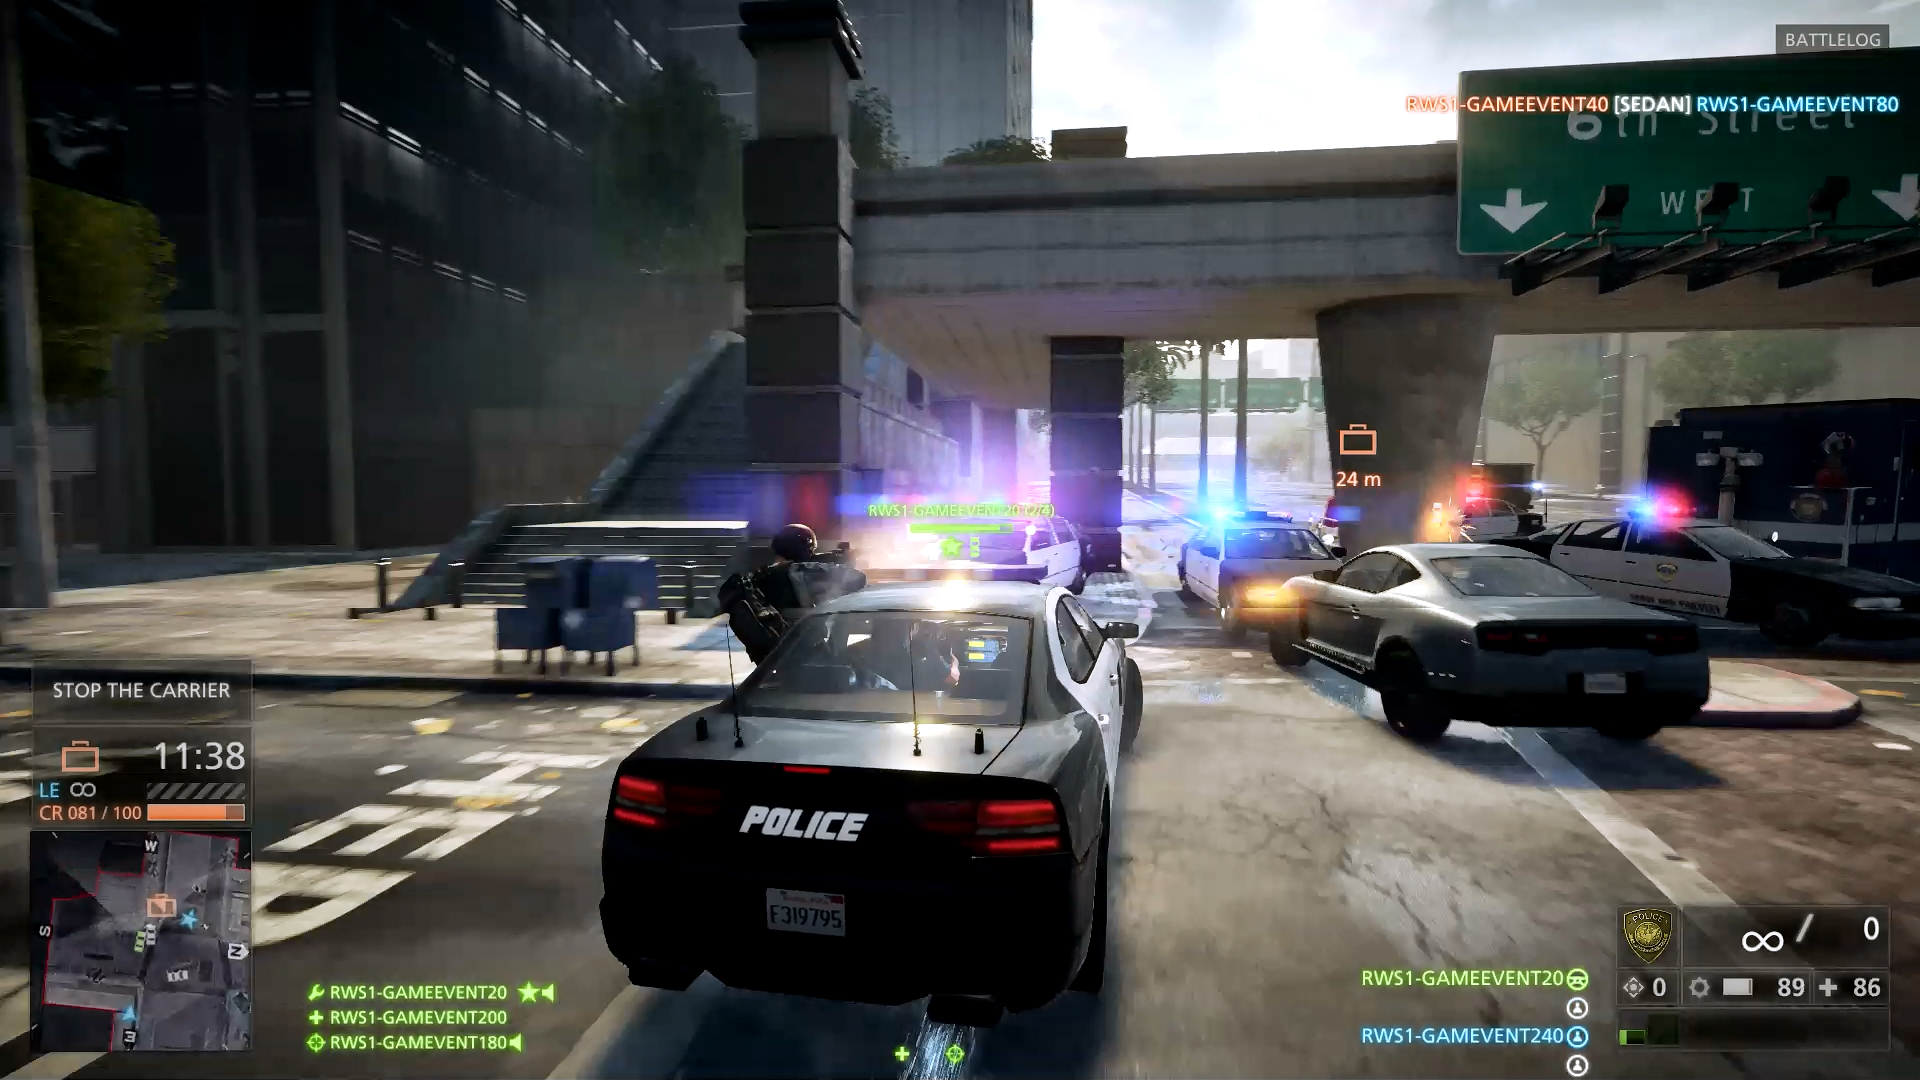 battlefield hardline review zum zapfenstreich der cops nat games. Black Bedroom Furniture Sets. Home Design Ideas